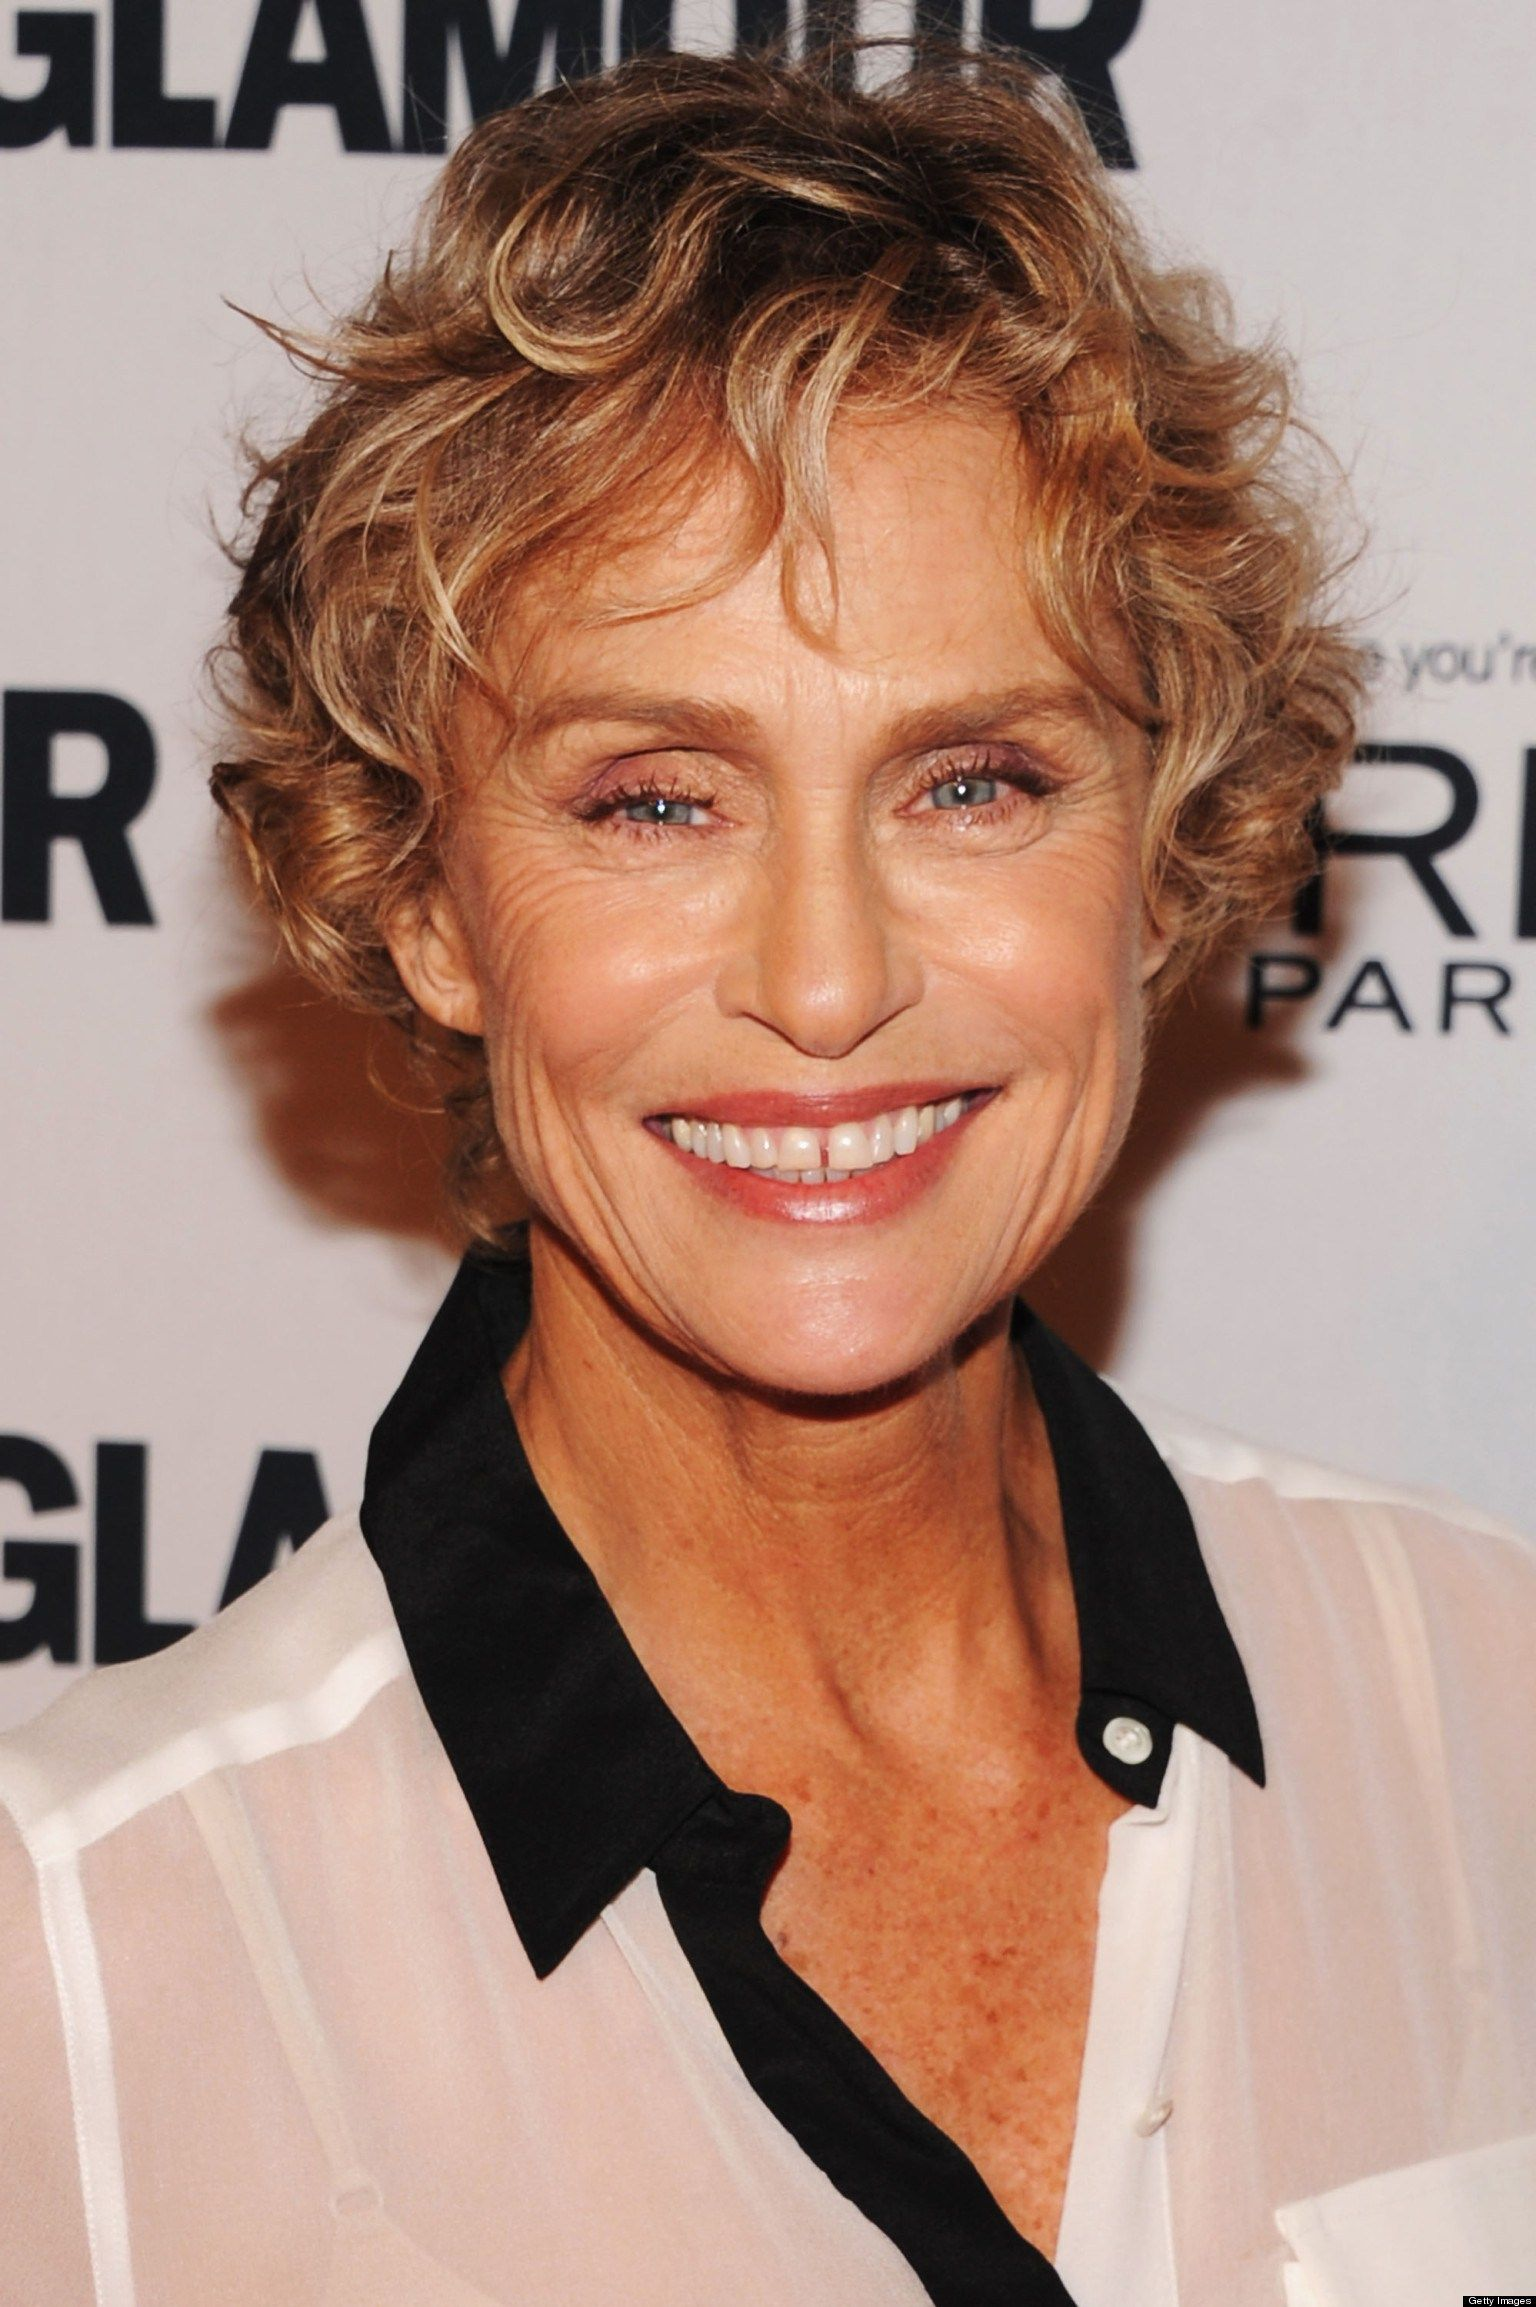 90 Classy and Simple Short Hairstyles for Women over 50 | Curly ...